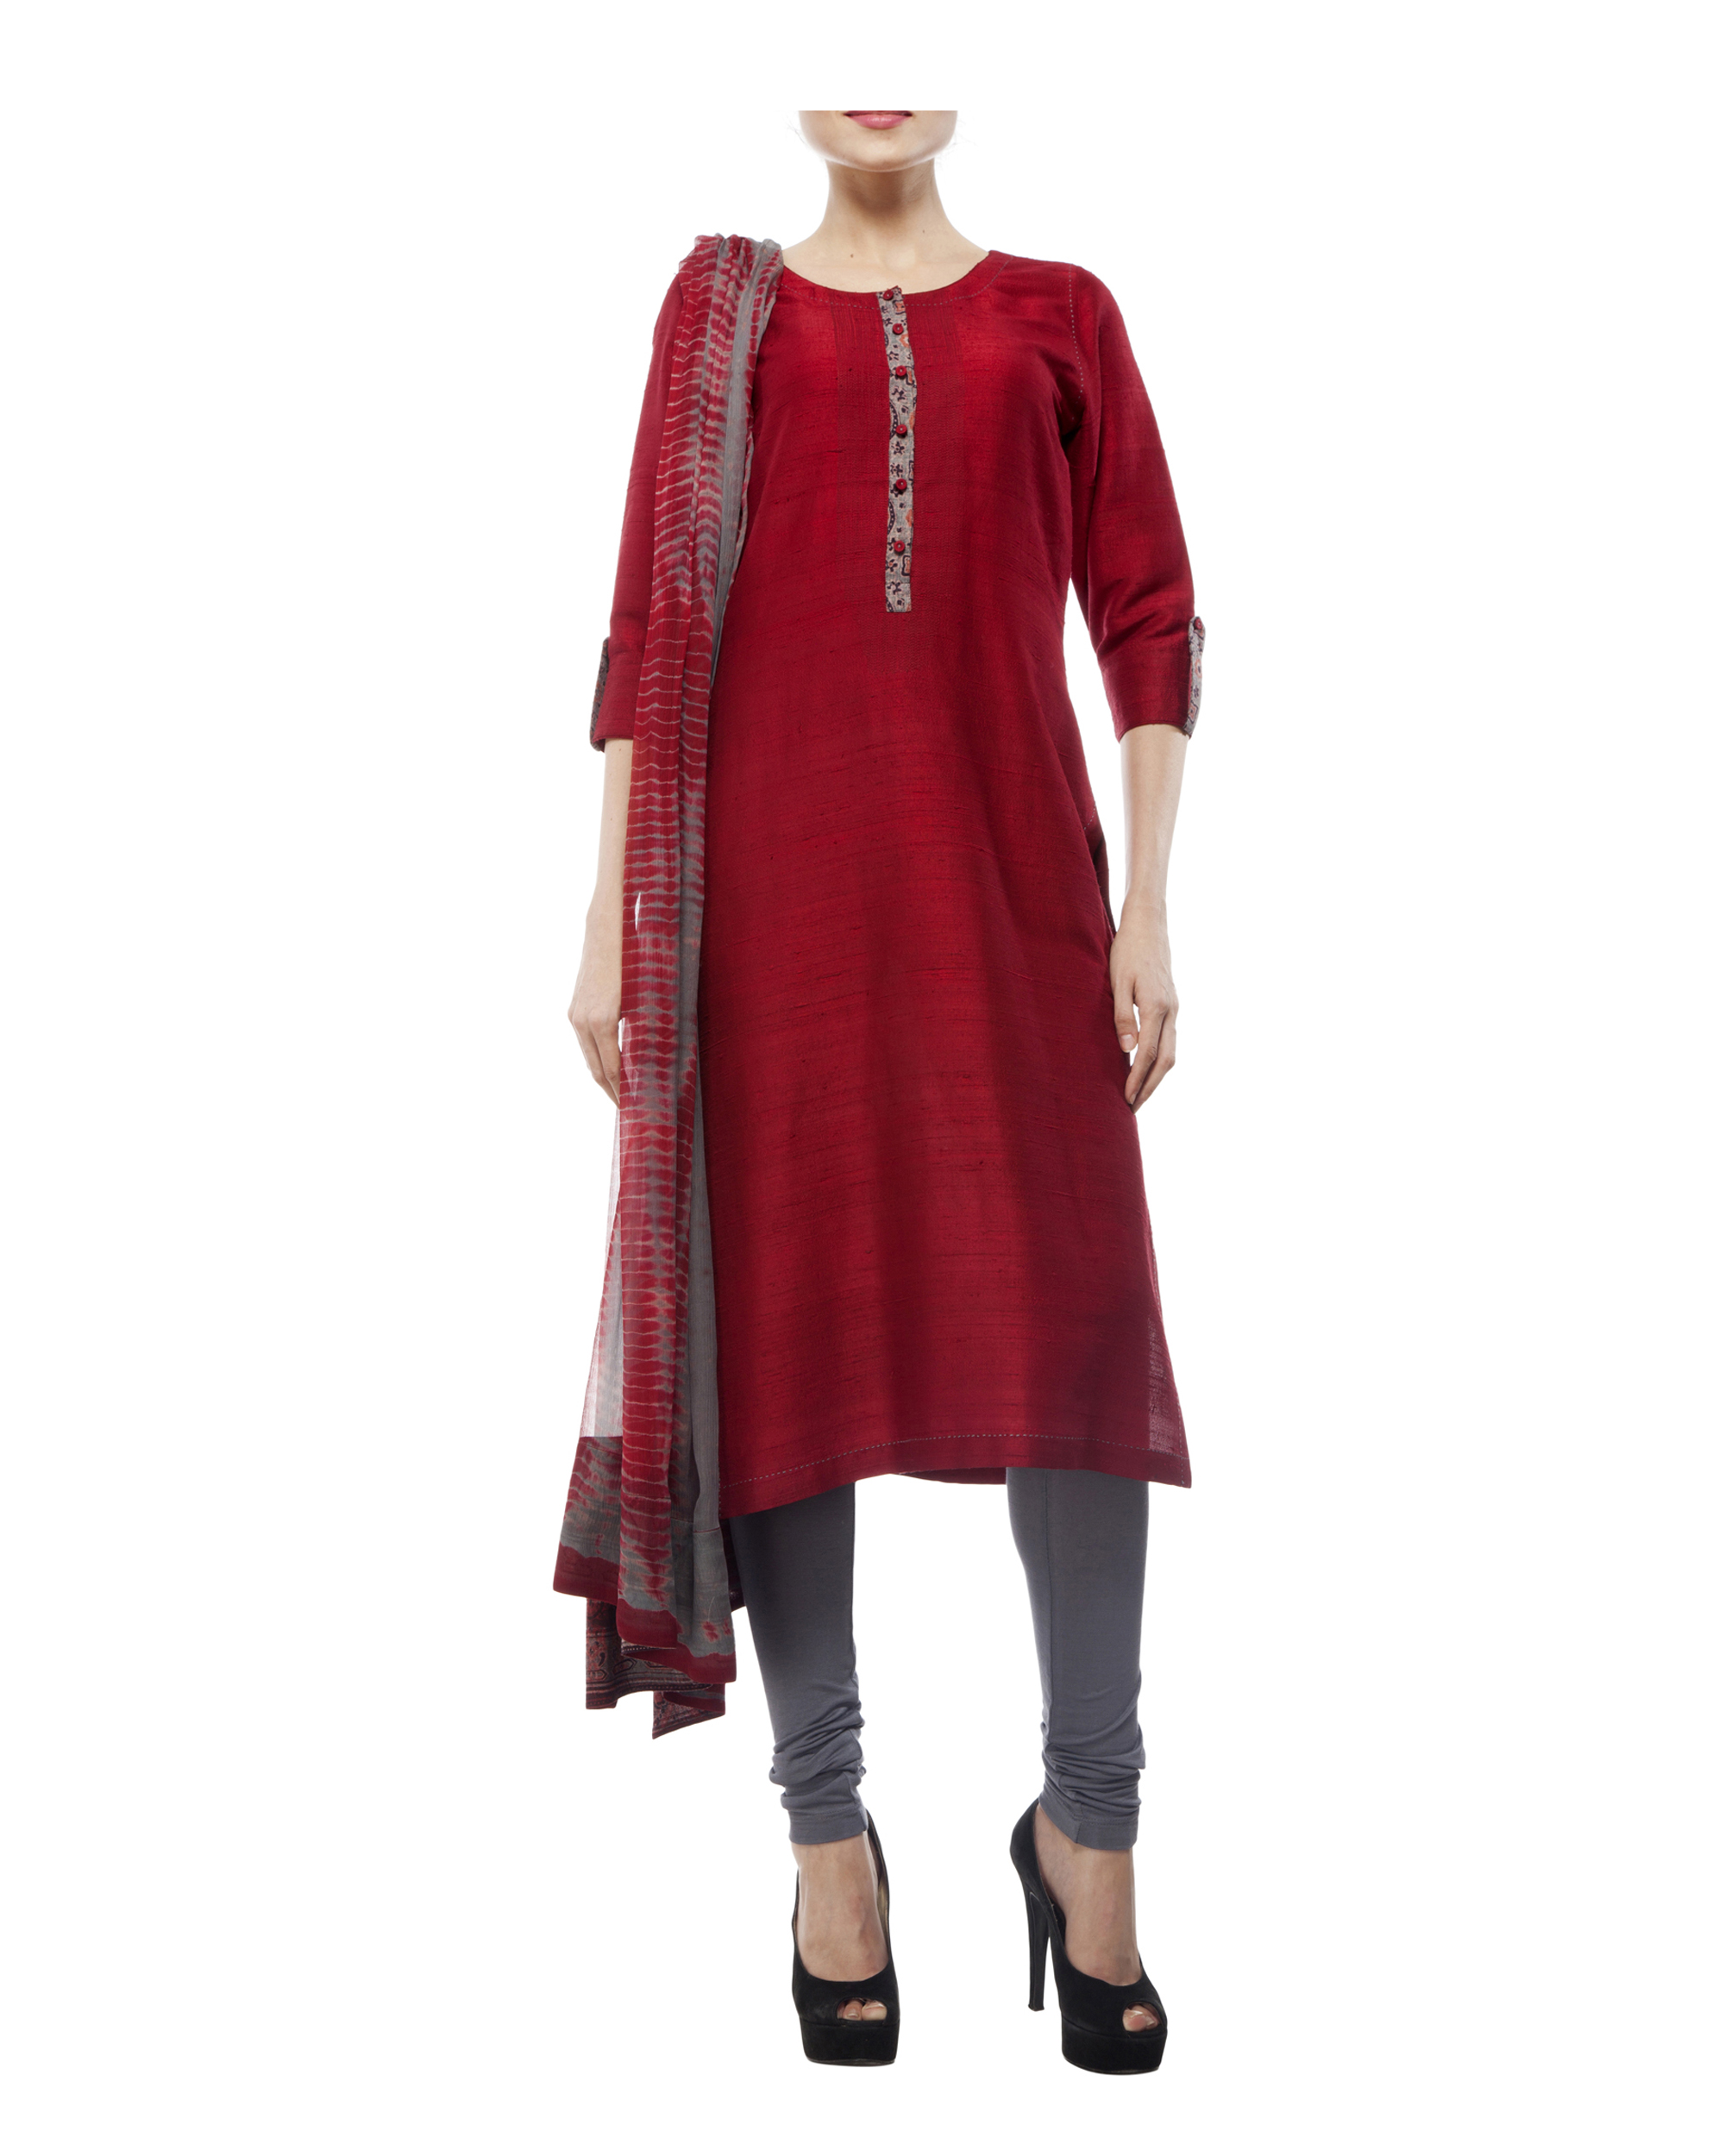 Kurta with front ajrakh print placket, comes with legging             tie & dye chiffon dupatta